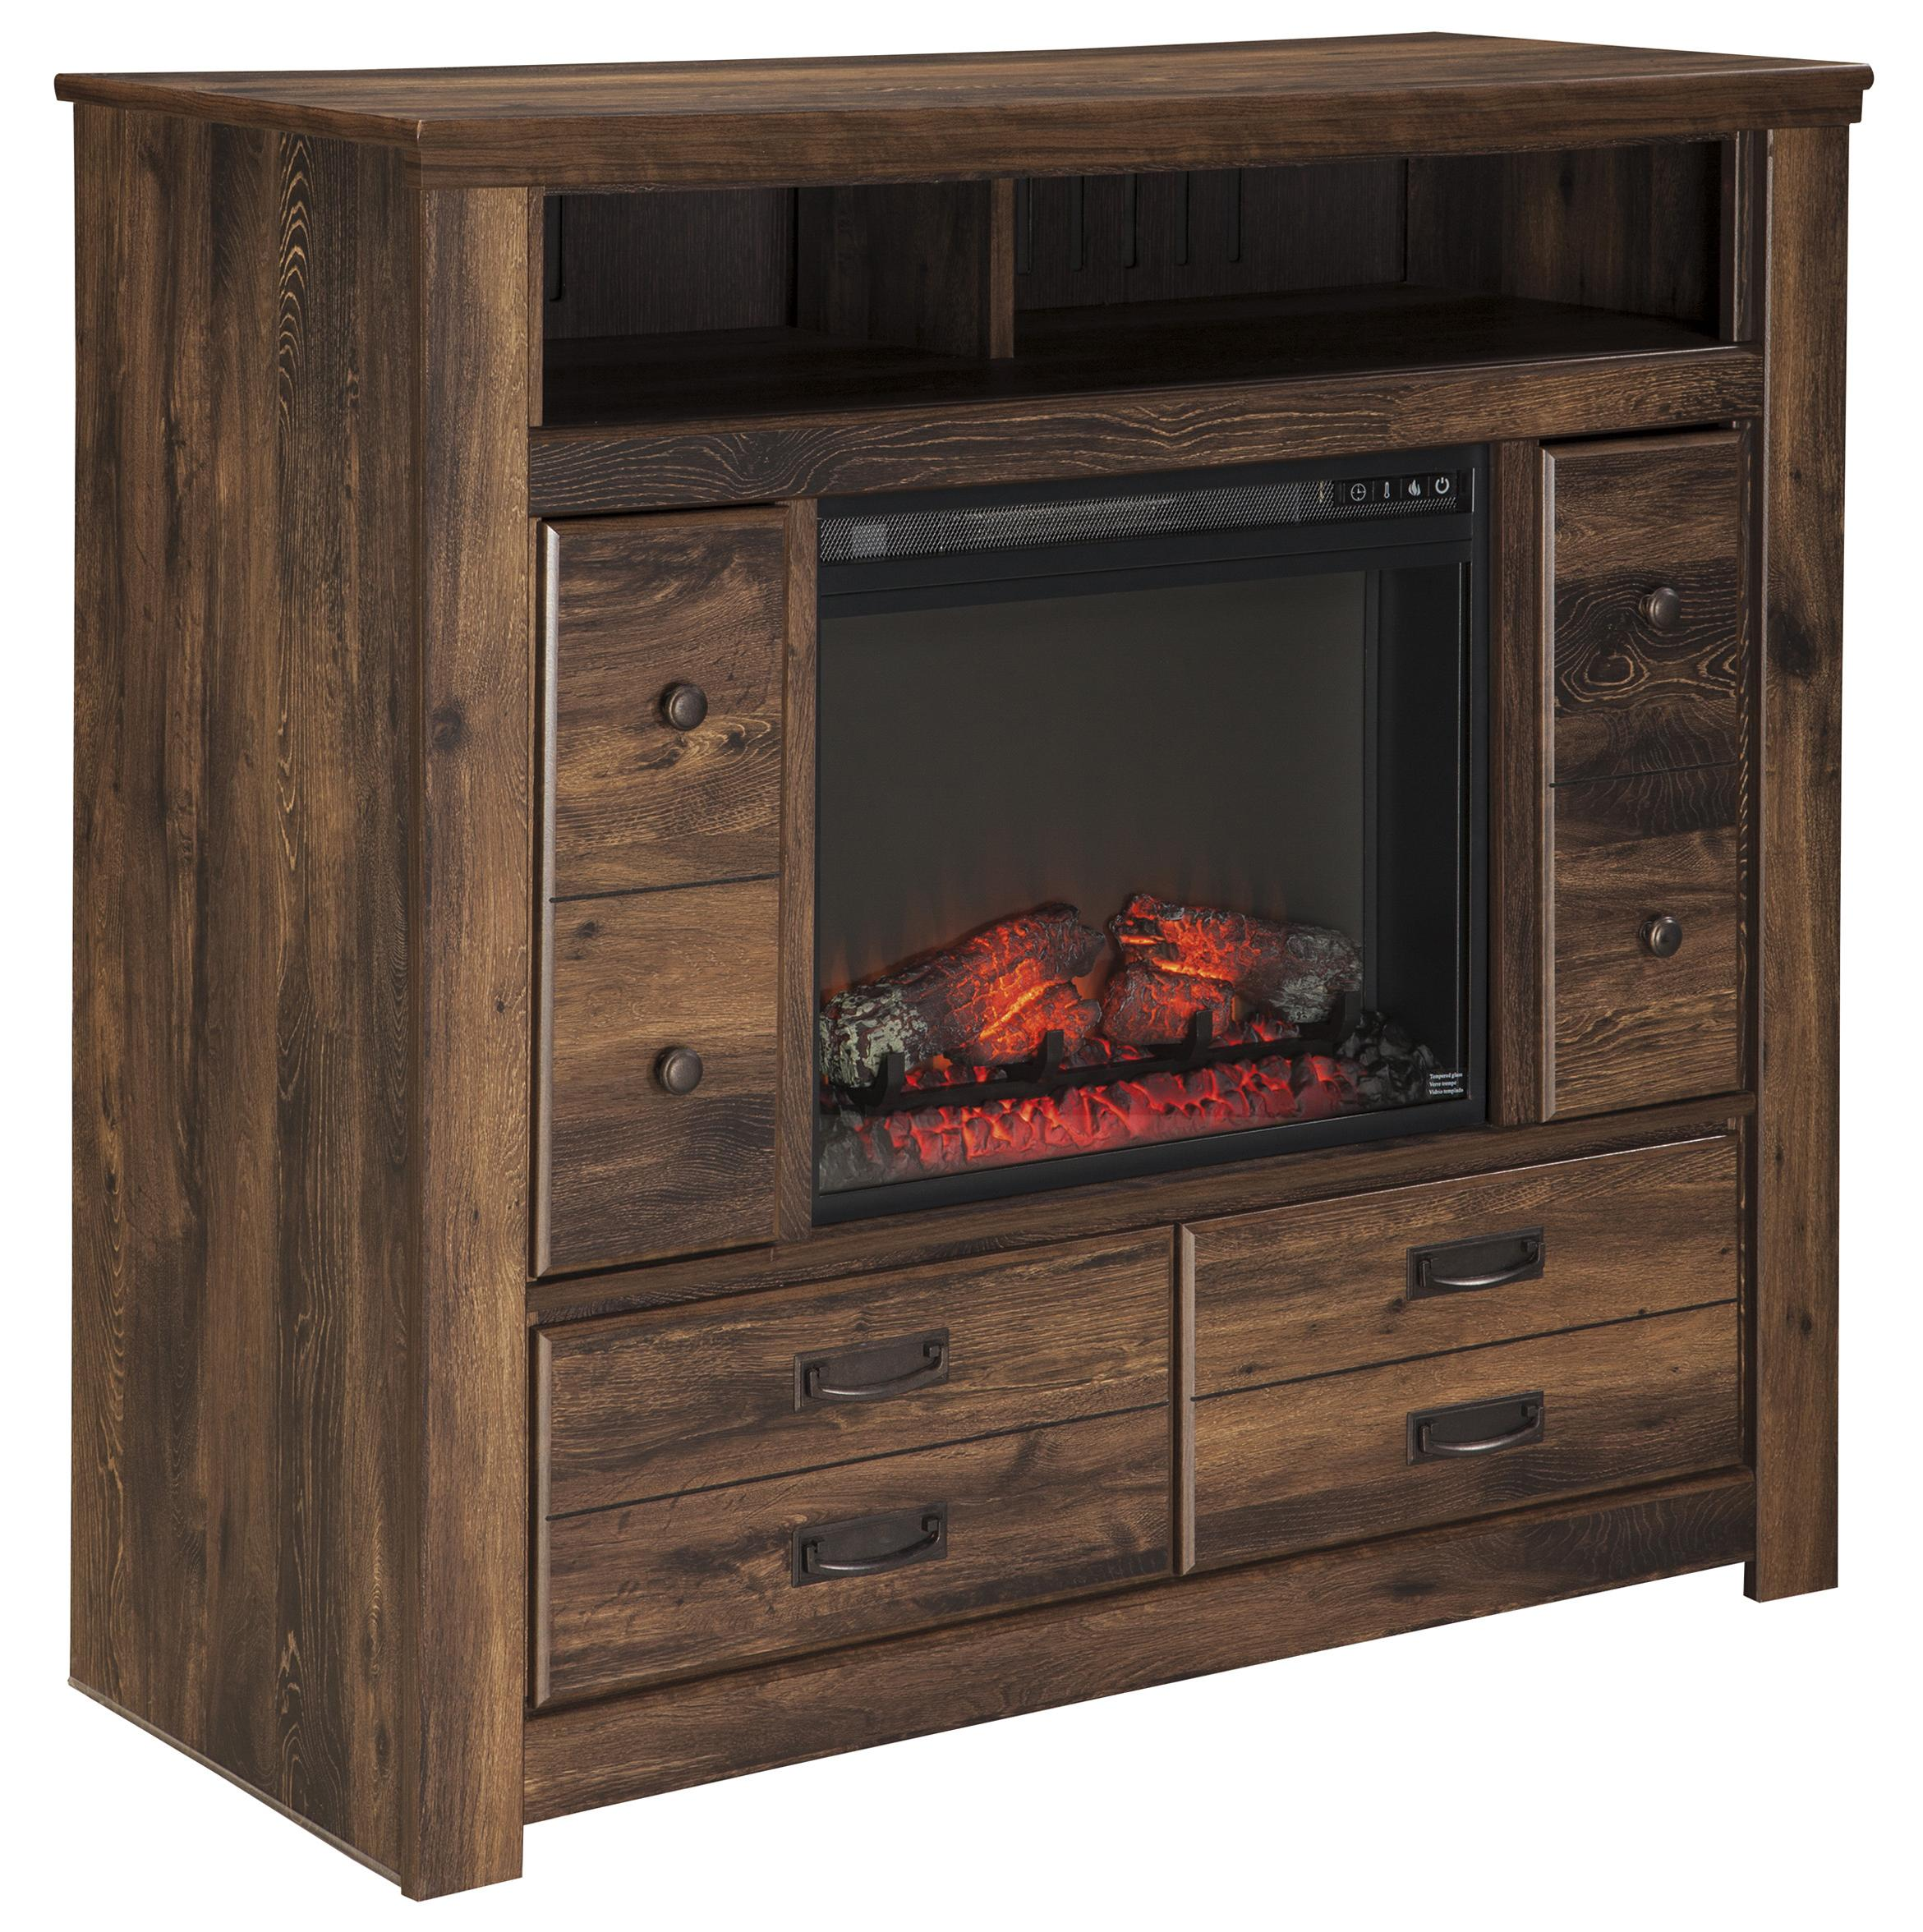 Rustic Media Chest With Fireplace Insert Doors By Signature Design By Ashley Wolf And